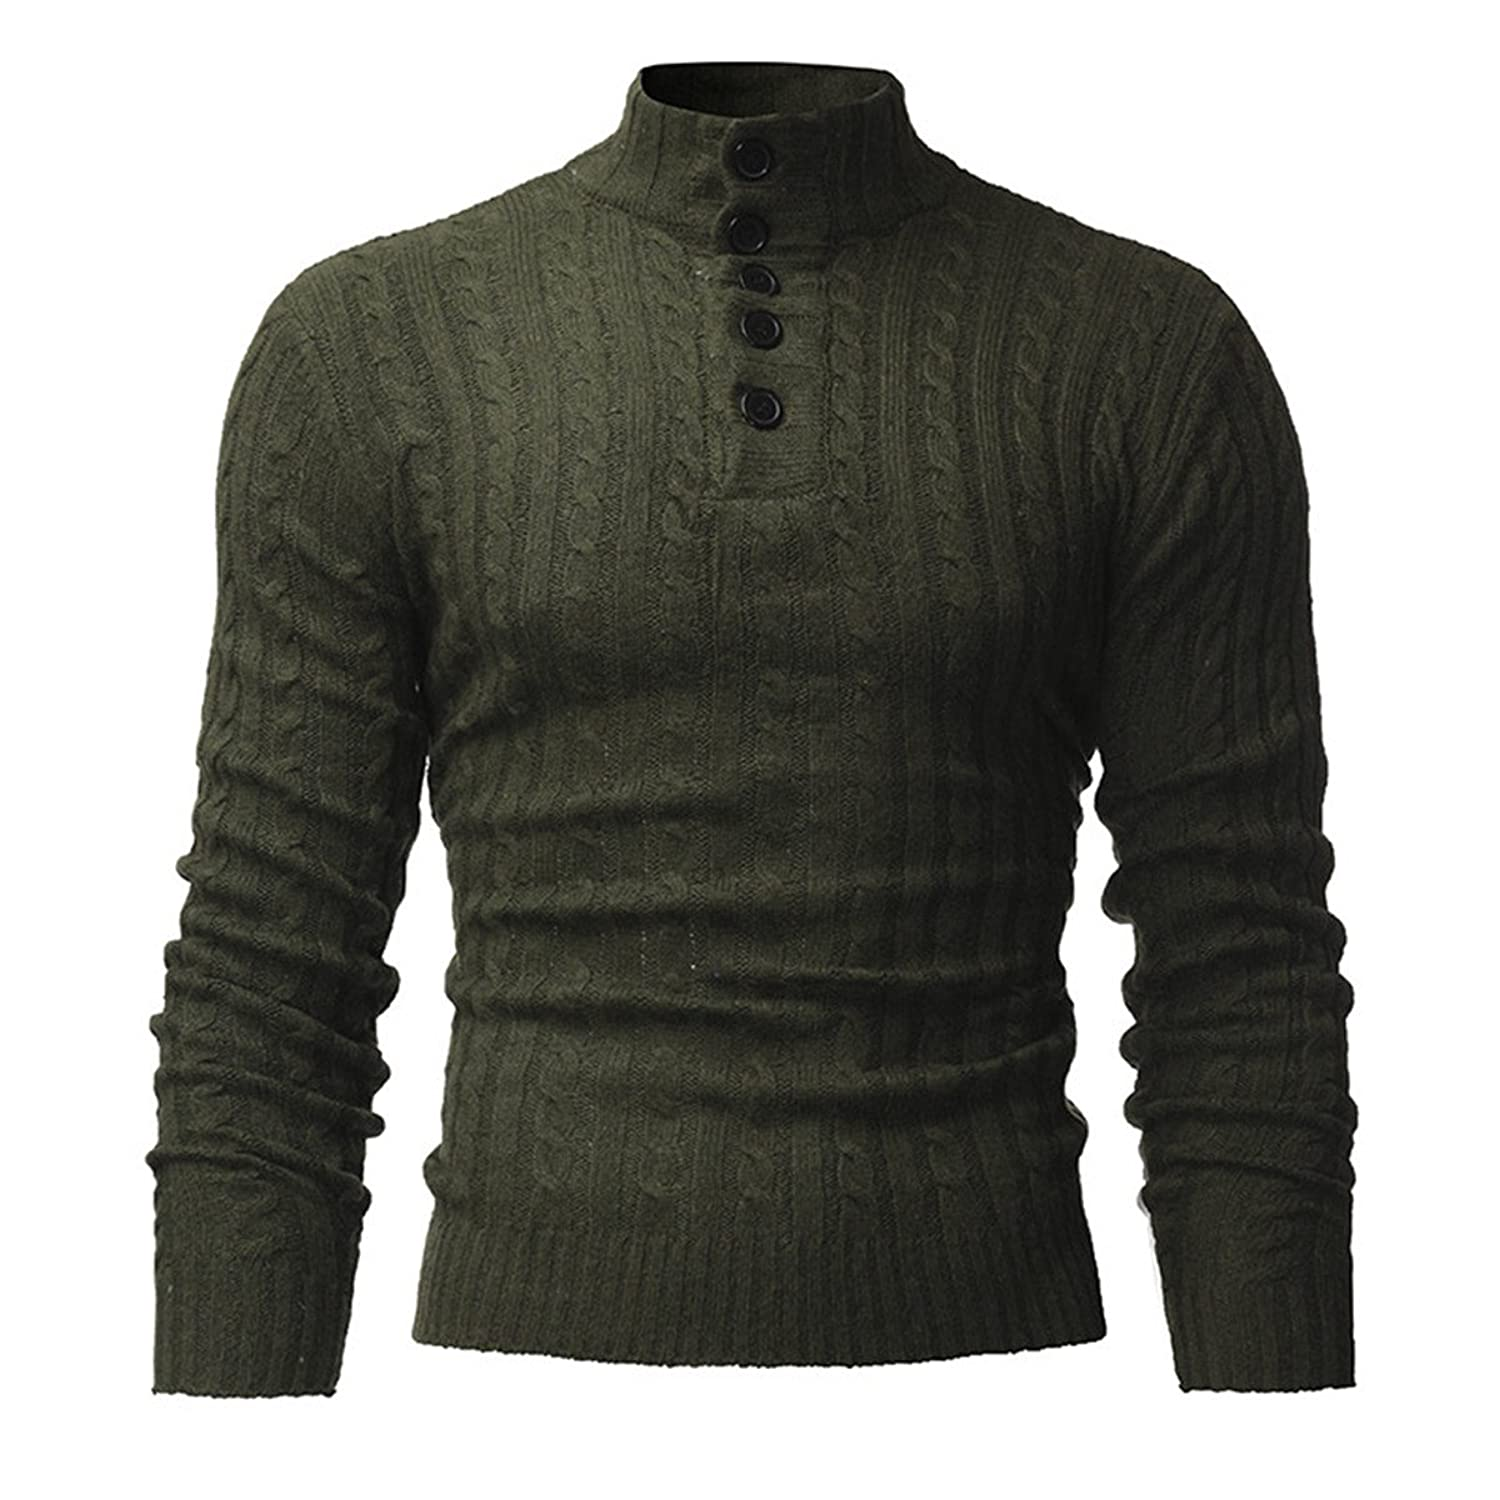 StyleDome Men's Knitted High Neck Pullover Button Up Jumper Sweater Turtleneck Tops